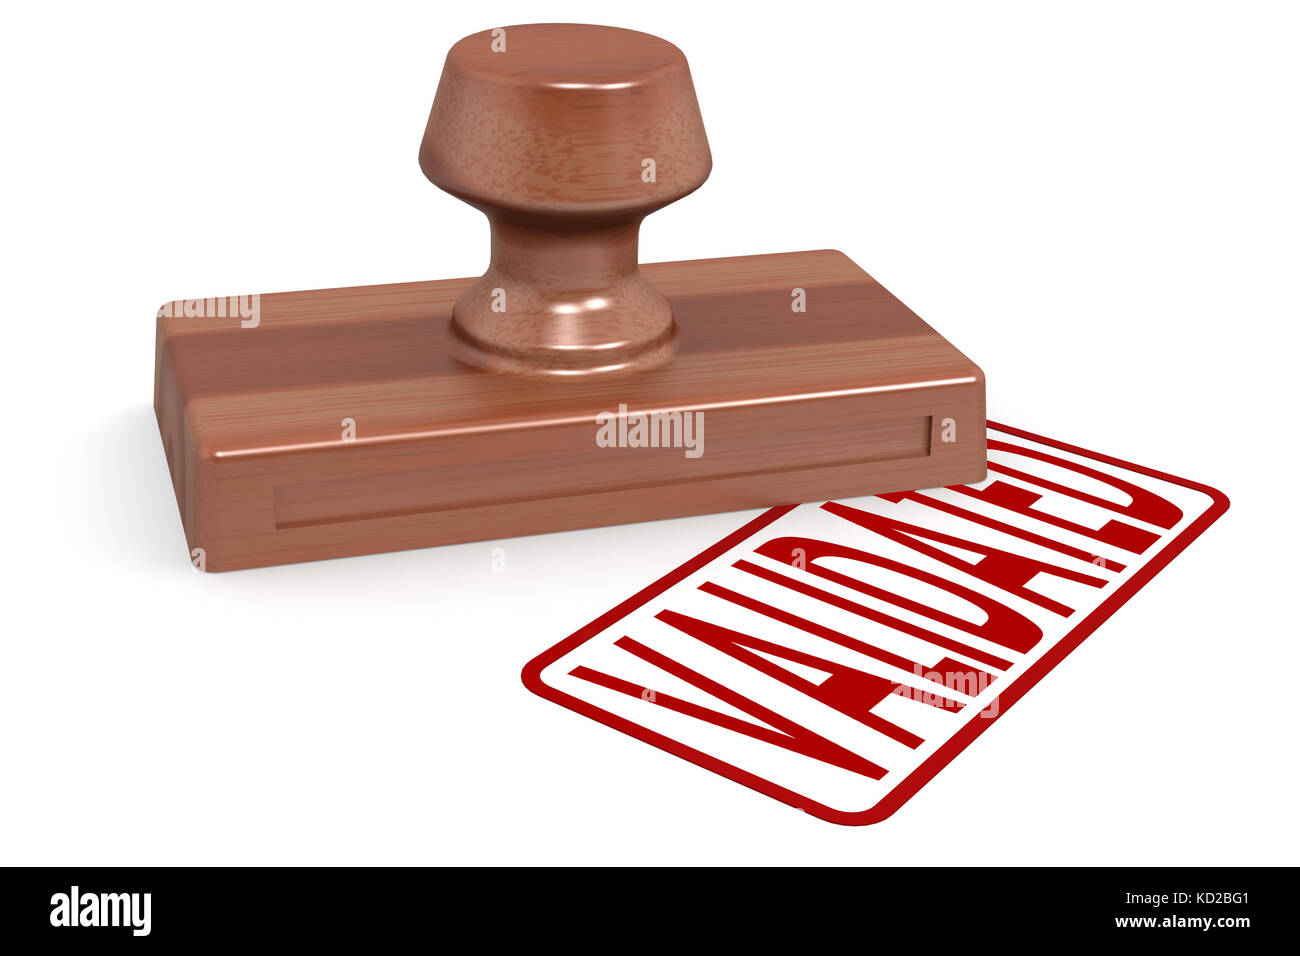 Wooden stamp validated with red text image with hi-res rendered artwork that could be used for any graphic design. Stock Photo